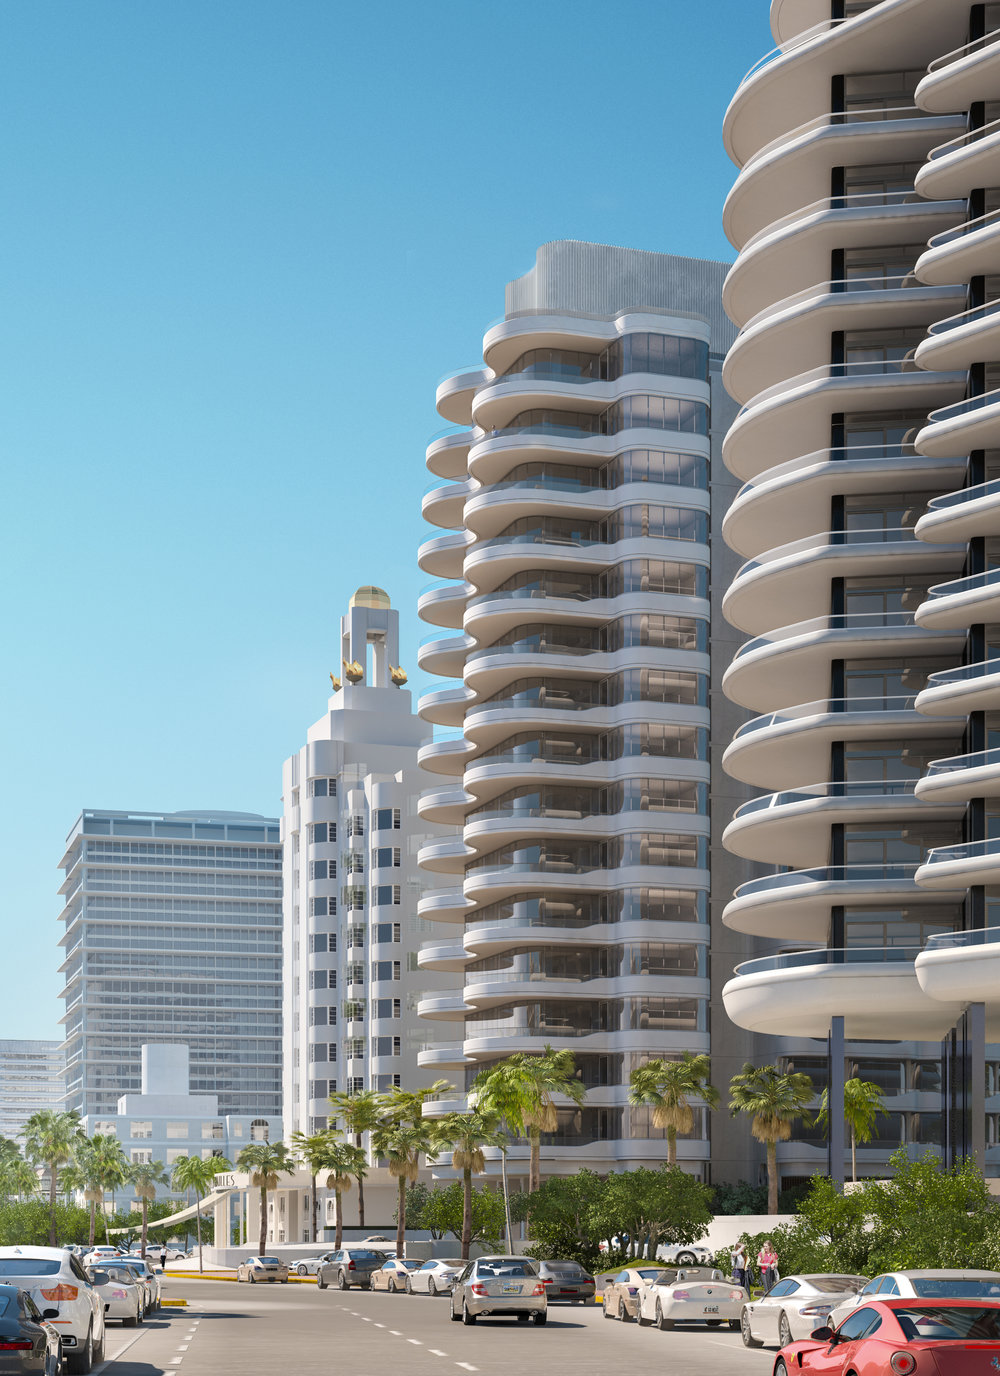 Brandon Haw took inspiration from Miami's art deco past for Faena Mar, a luxury condominium in the Faena District.